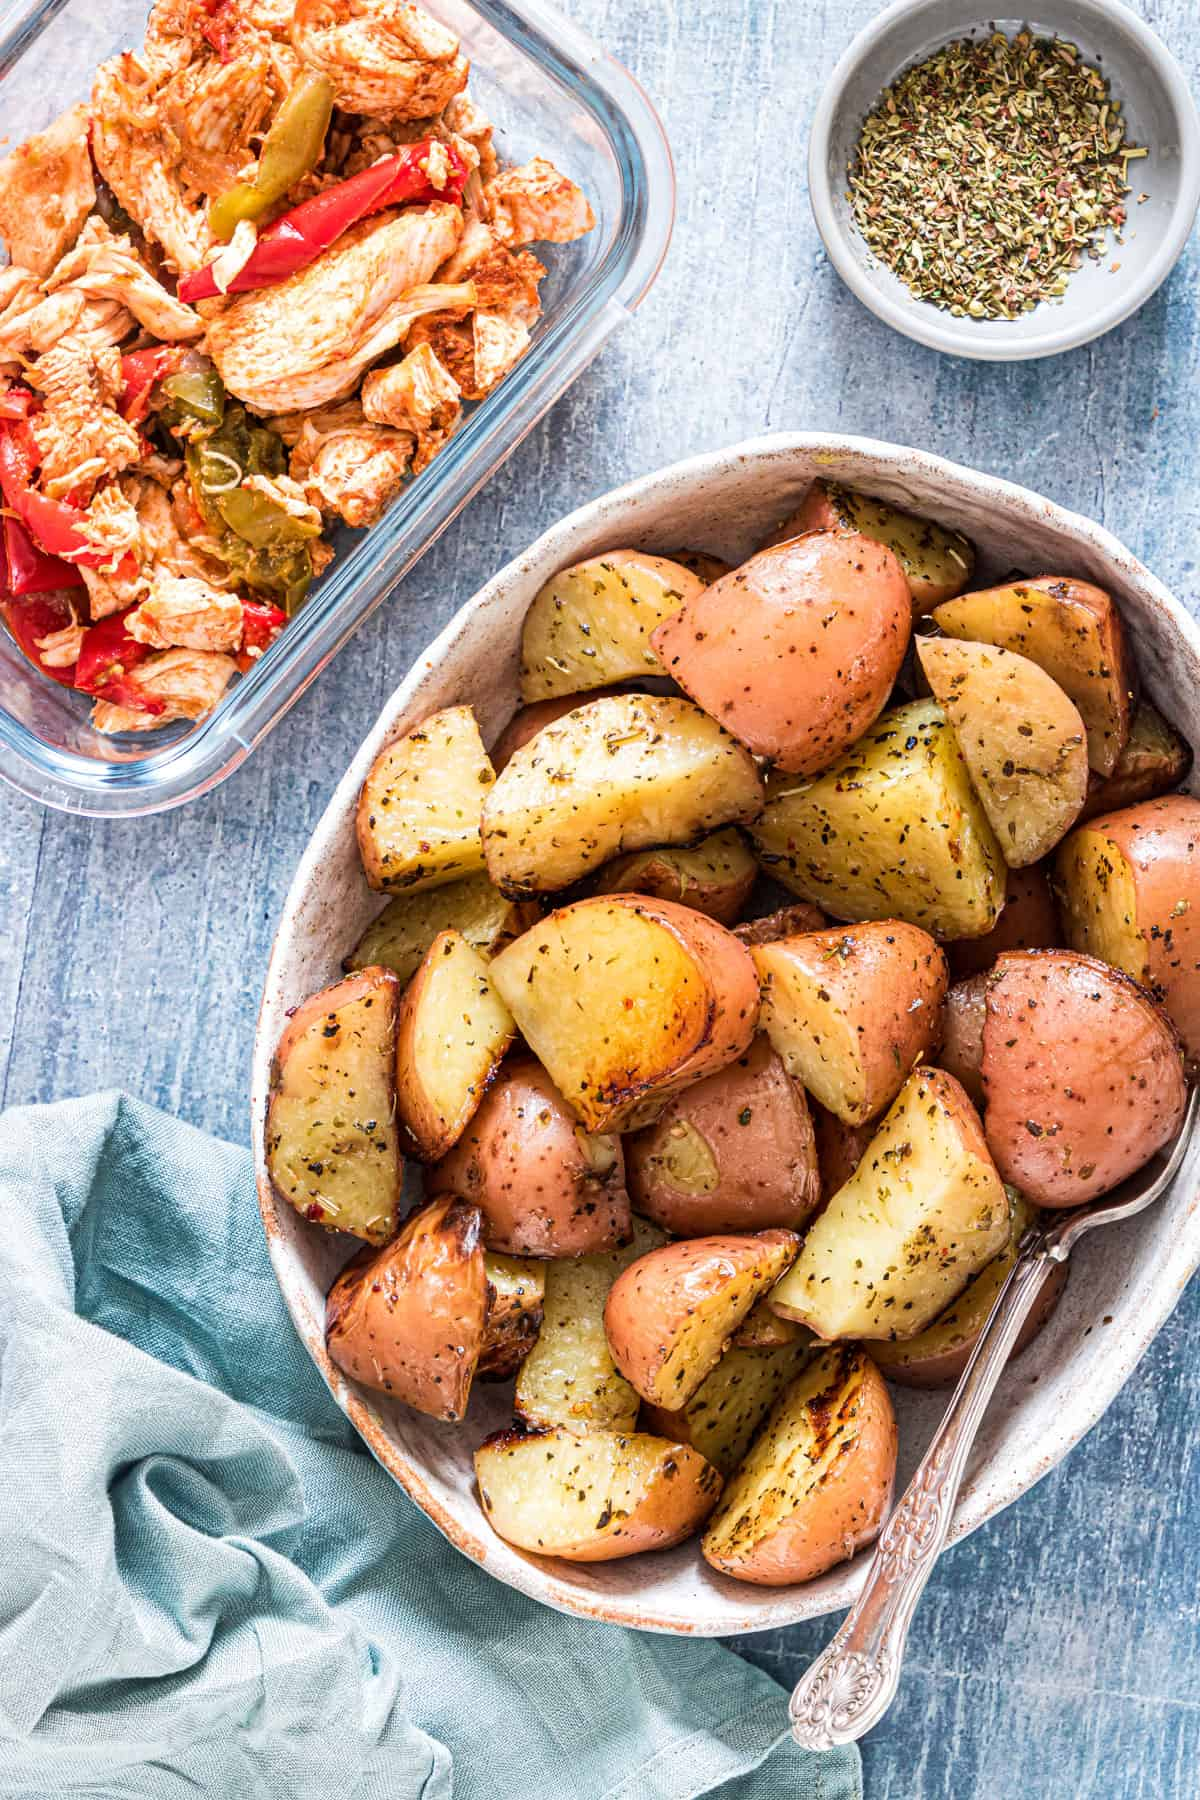 a table with a bowl of grilled potatoes, seasoning and chicken